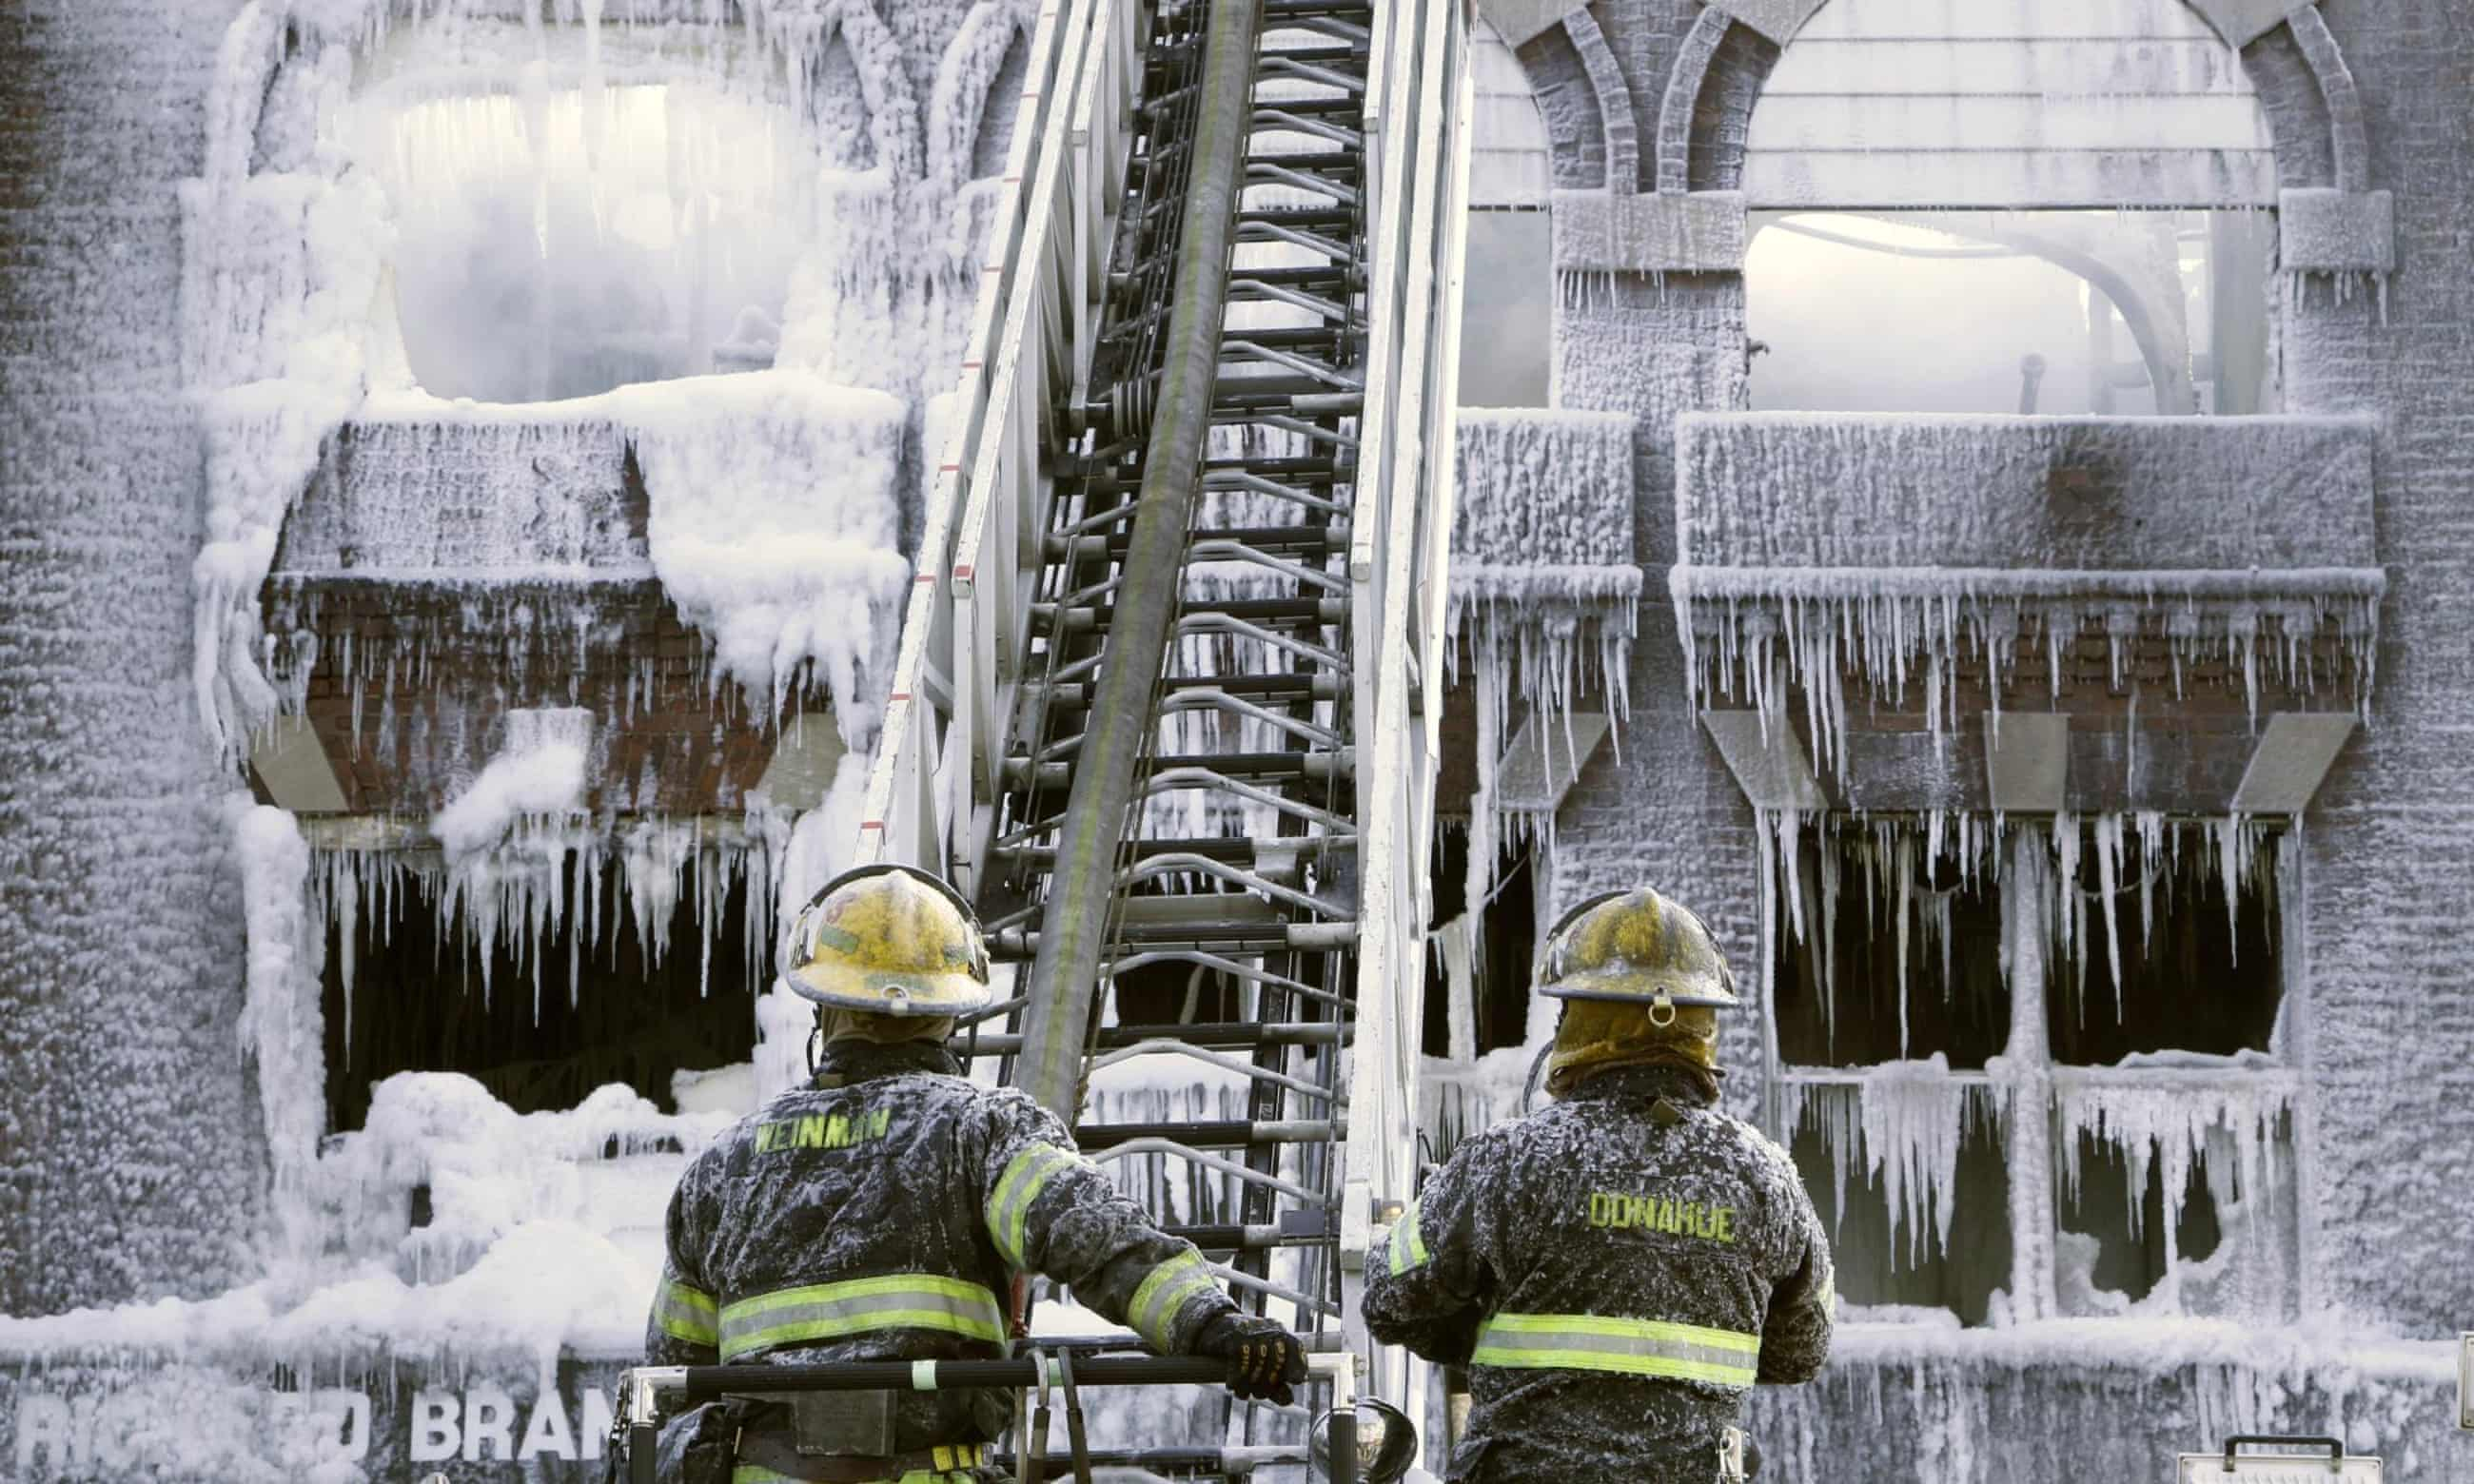 Bitter cold leaves site of Philadelphia fire encased in ice – pictures